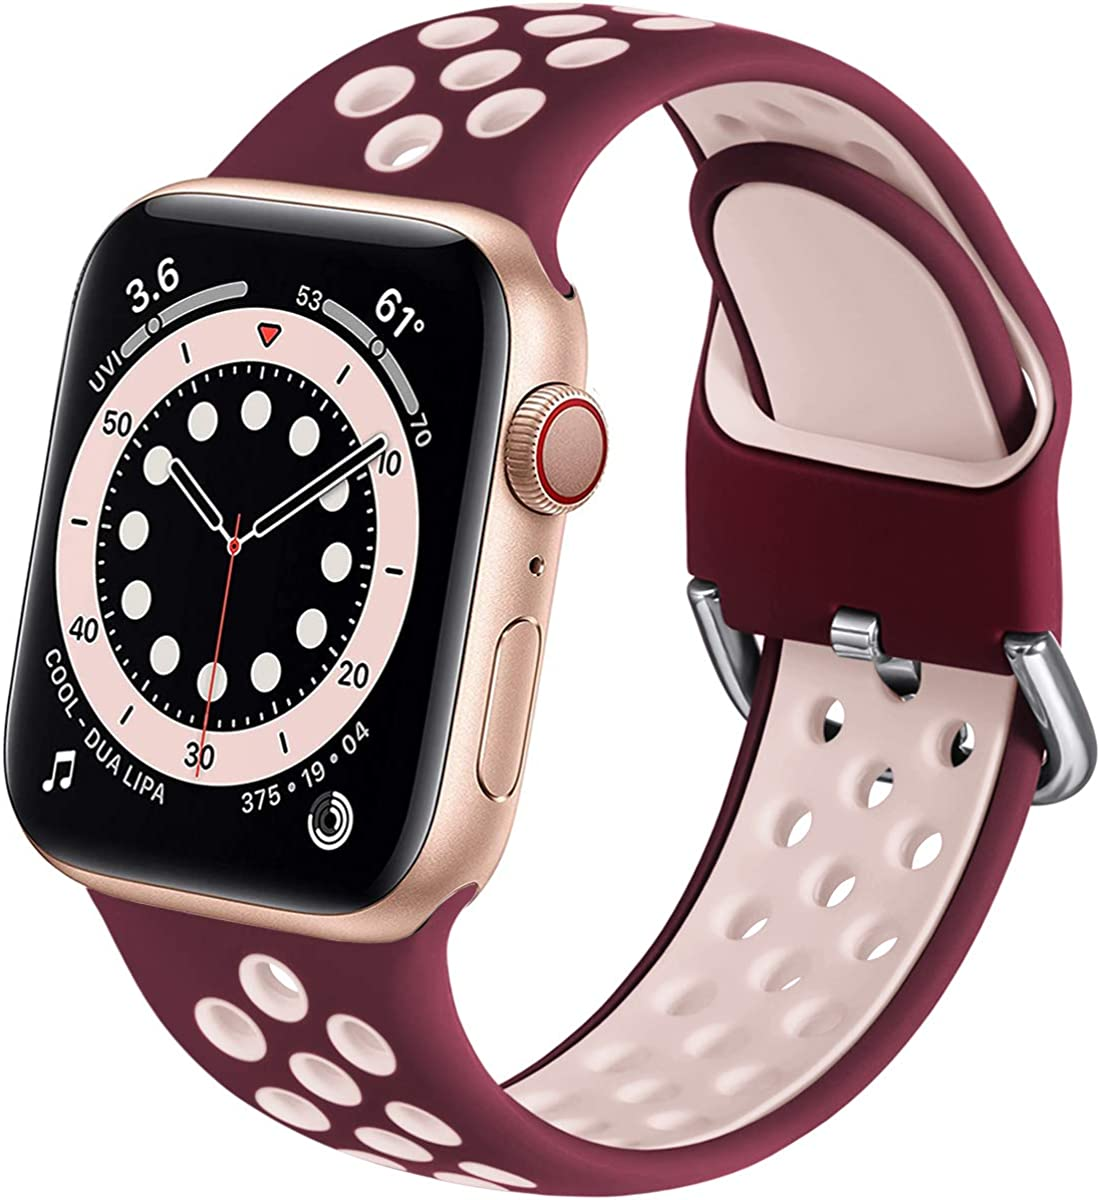 Muranne Sport Band Compatible with Apple Watch 44mm 42mm 40mm 38mm for Women Men, Sporty Breathable Soft Silicone Replacement Wrist Strap Compatible with iWatch SE Series 6 5 4 3 2 1, S/M M/L